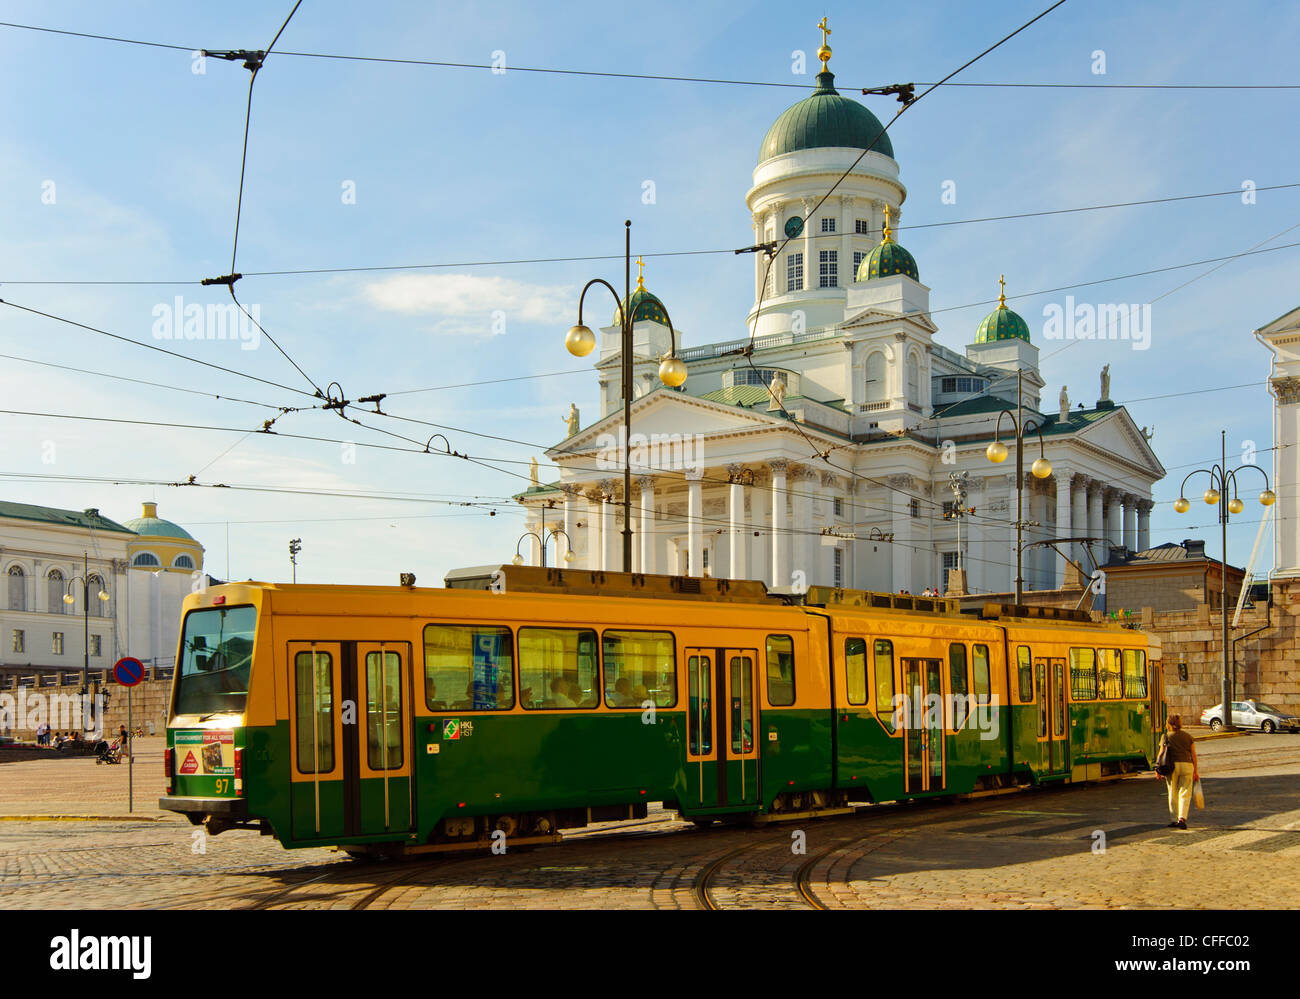 Tram passing in front of the Lutheran Cathedral (Tuomiokirkko) in Helsinki Finland - Stock Image